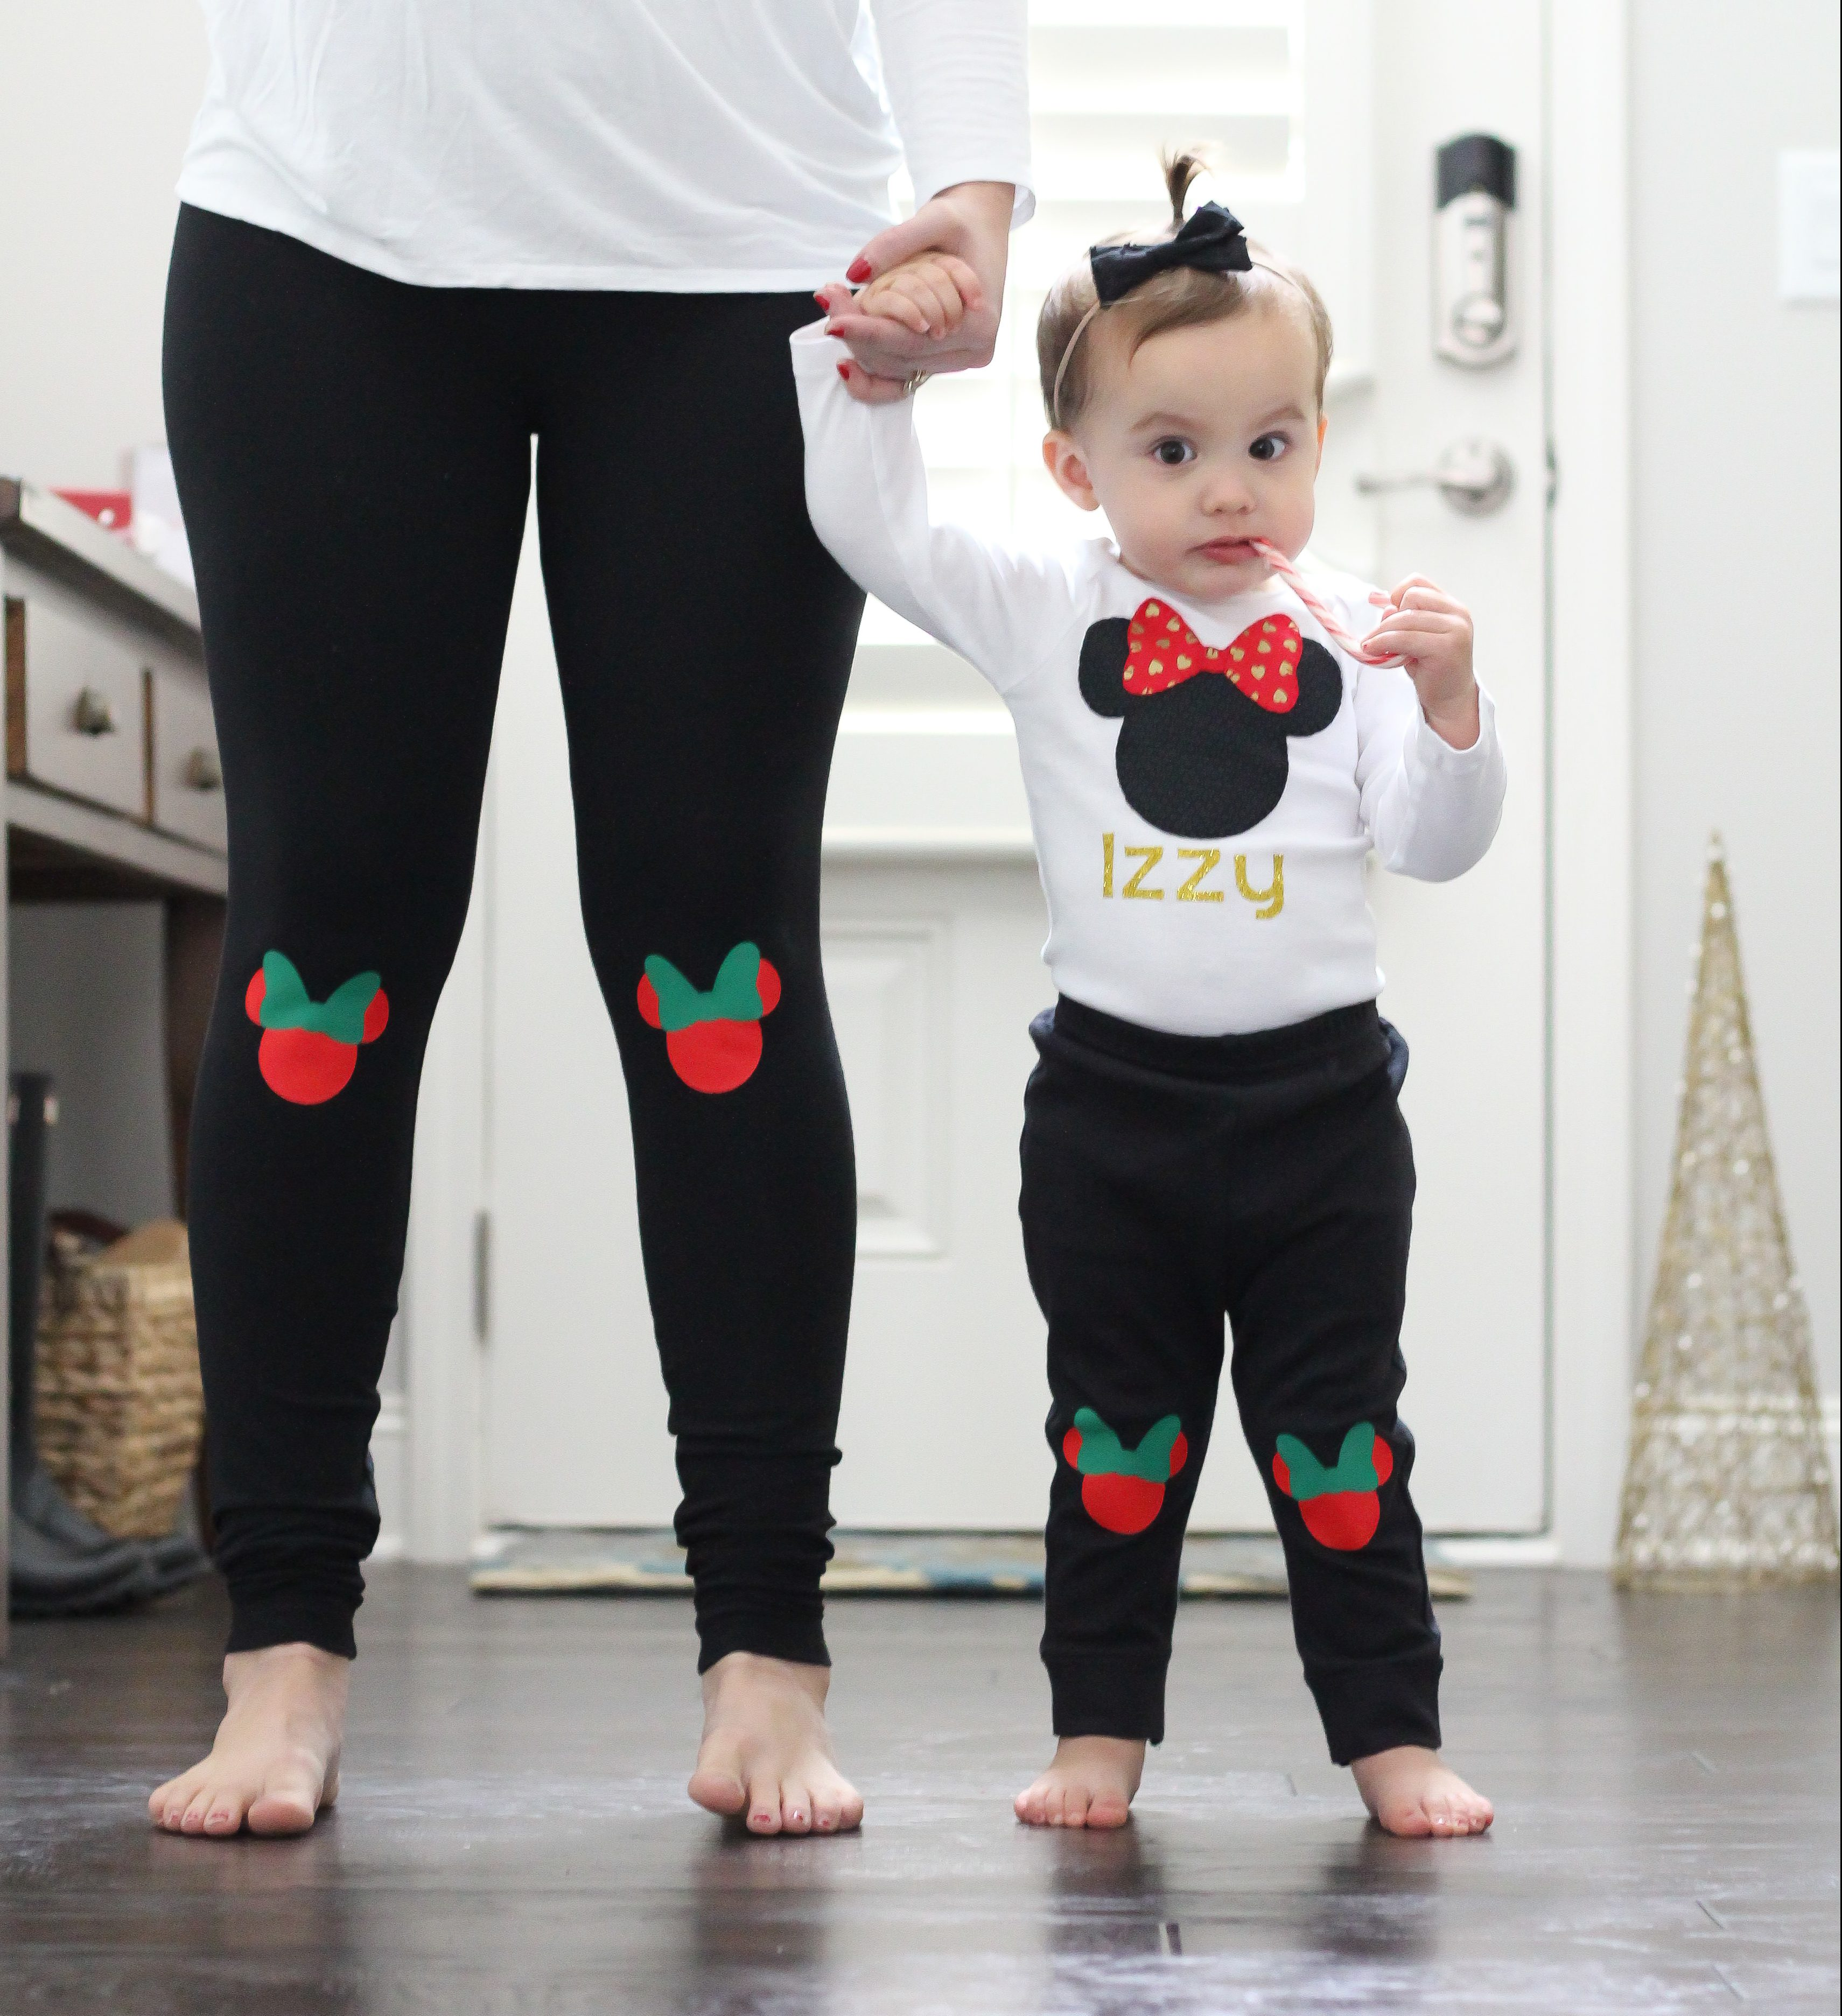 Shop Small Saturday – Mommy and Me Looks